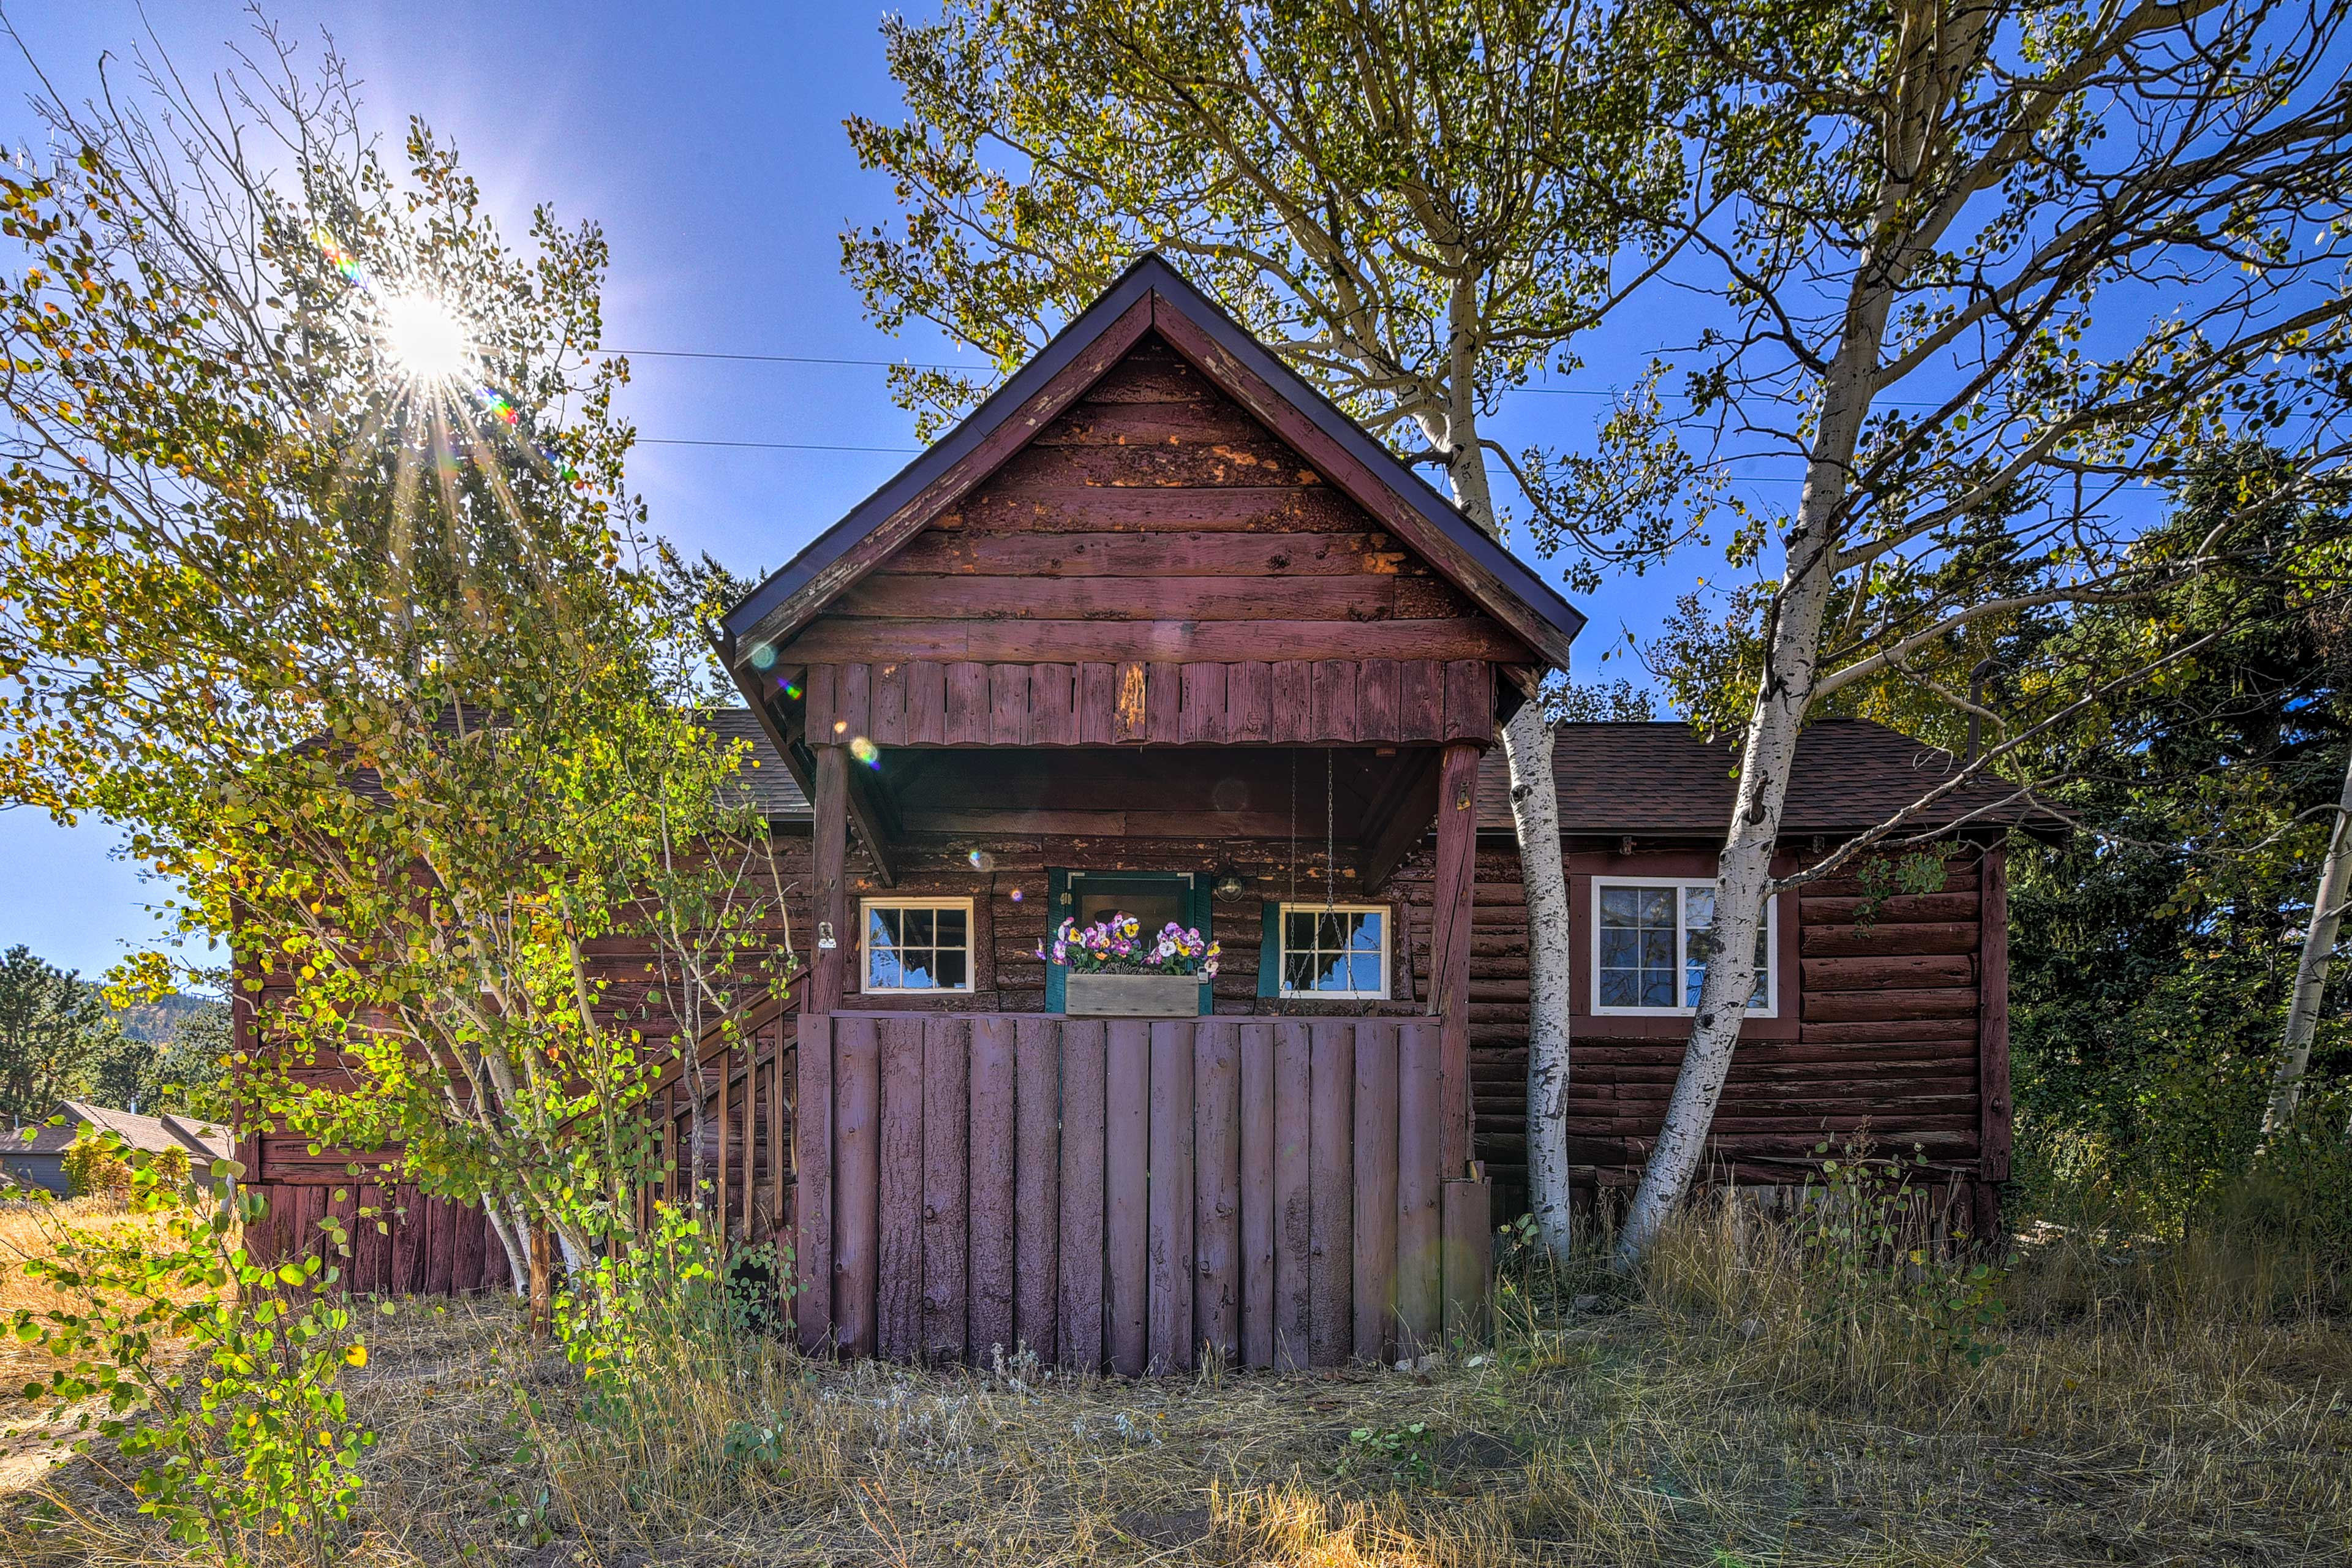 This cozy vacation rental cabin is located in Allenspark, CO.